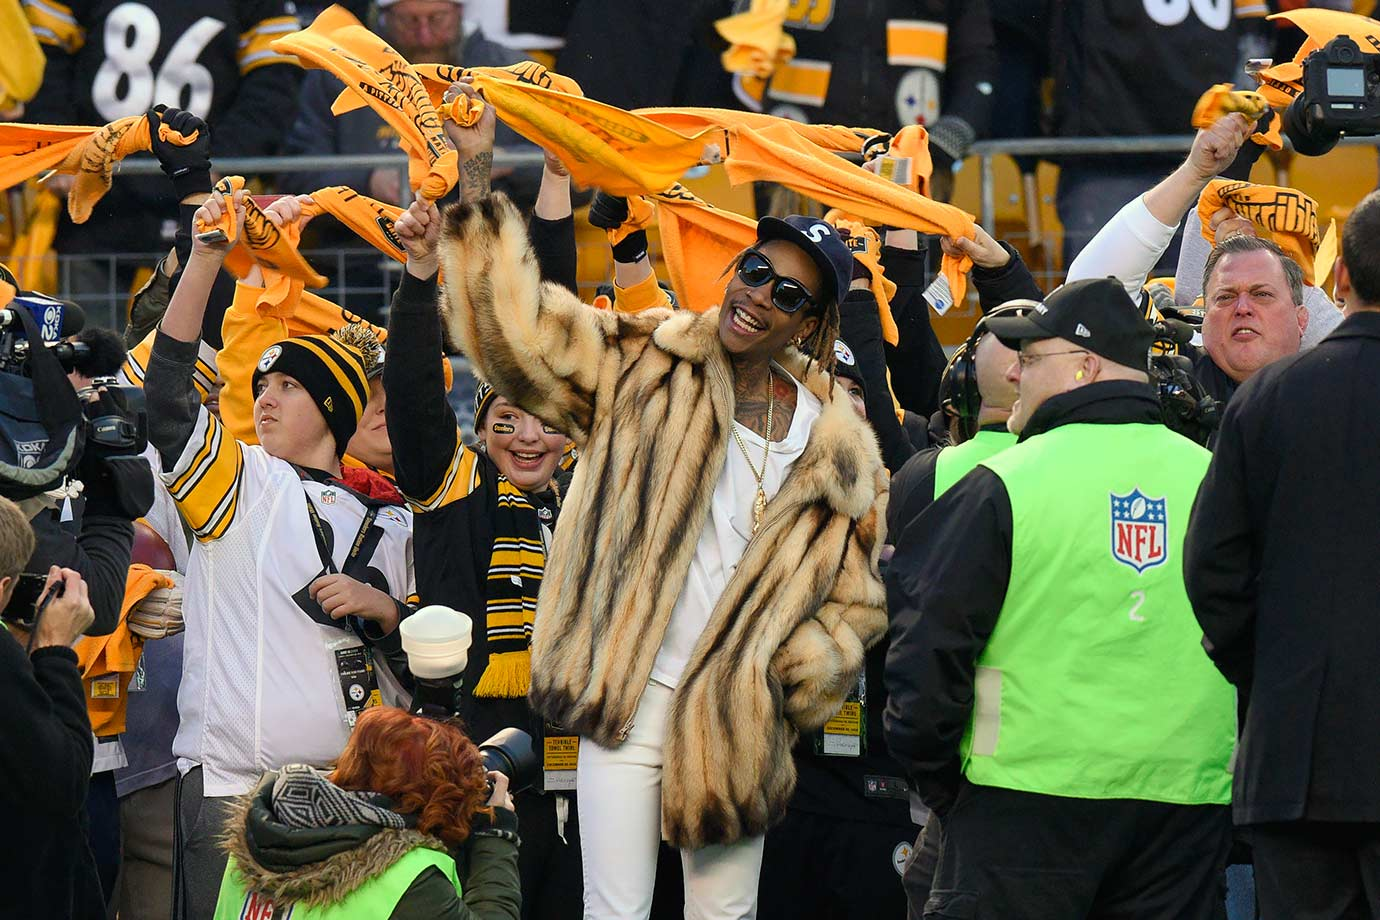 Pittsburgh Steelers vs. Denver Broncos on Dec. 20, 2015 at Heinz Field in Pittsburgh.